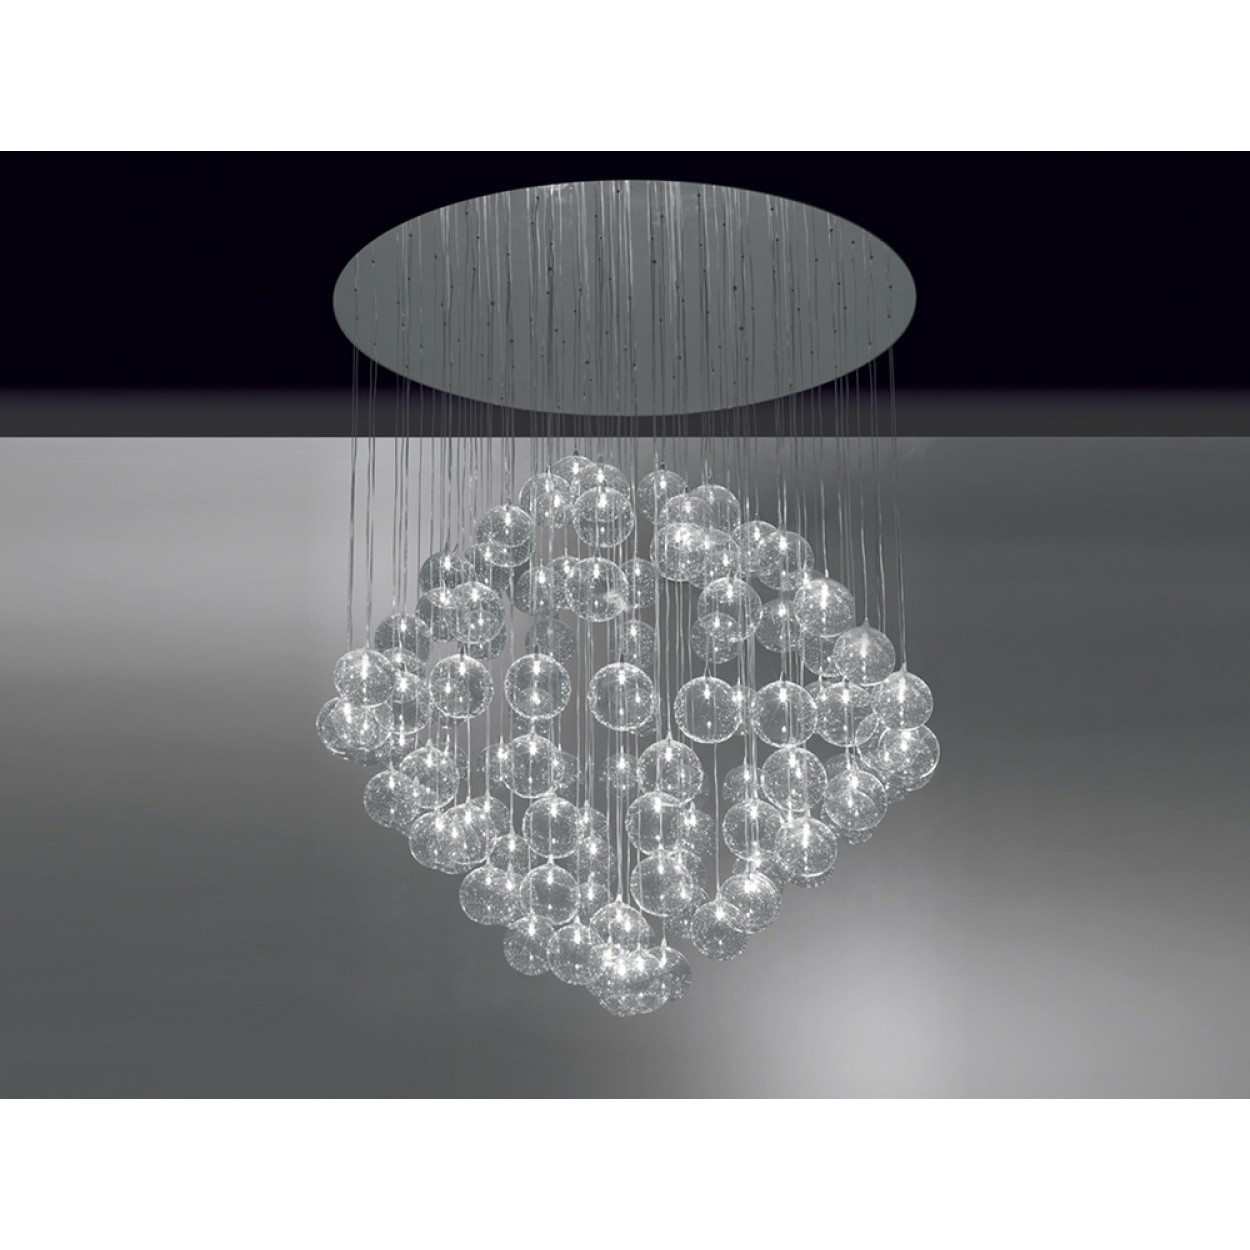 CUSTOM SIZE BULLES SUSPENSION LAMP